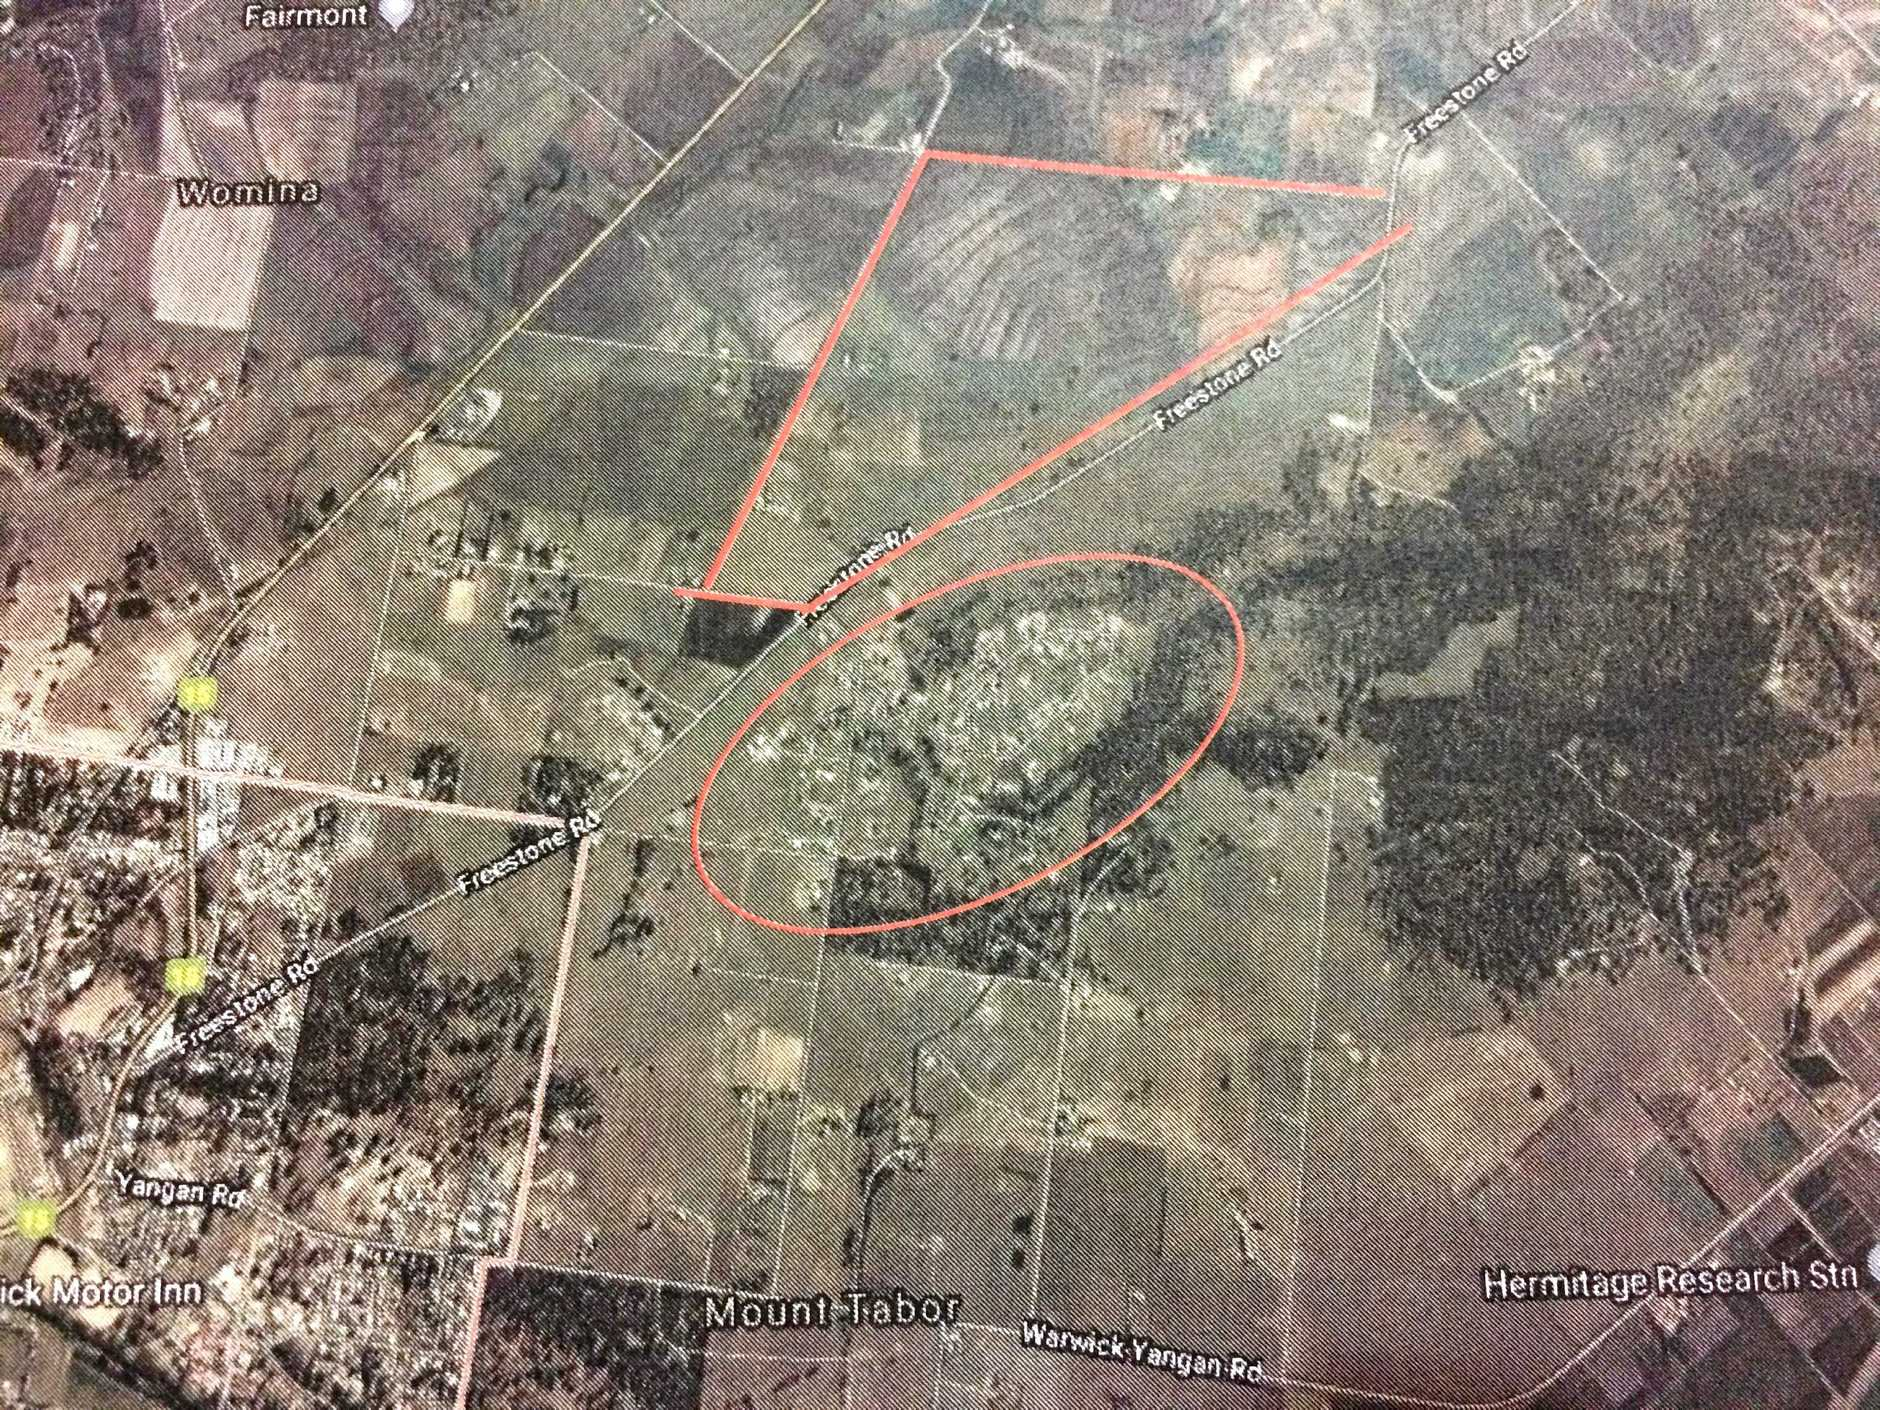 FLARING UP: Map depicting the proposed Warwick solar farm site covering 154-hectares of beautiful agricultural land in Freestone Valley. The Mt Tabor residential precinct is also circled in red.